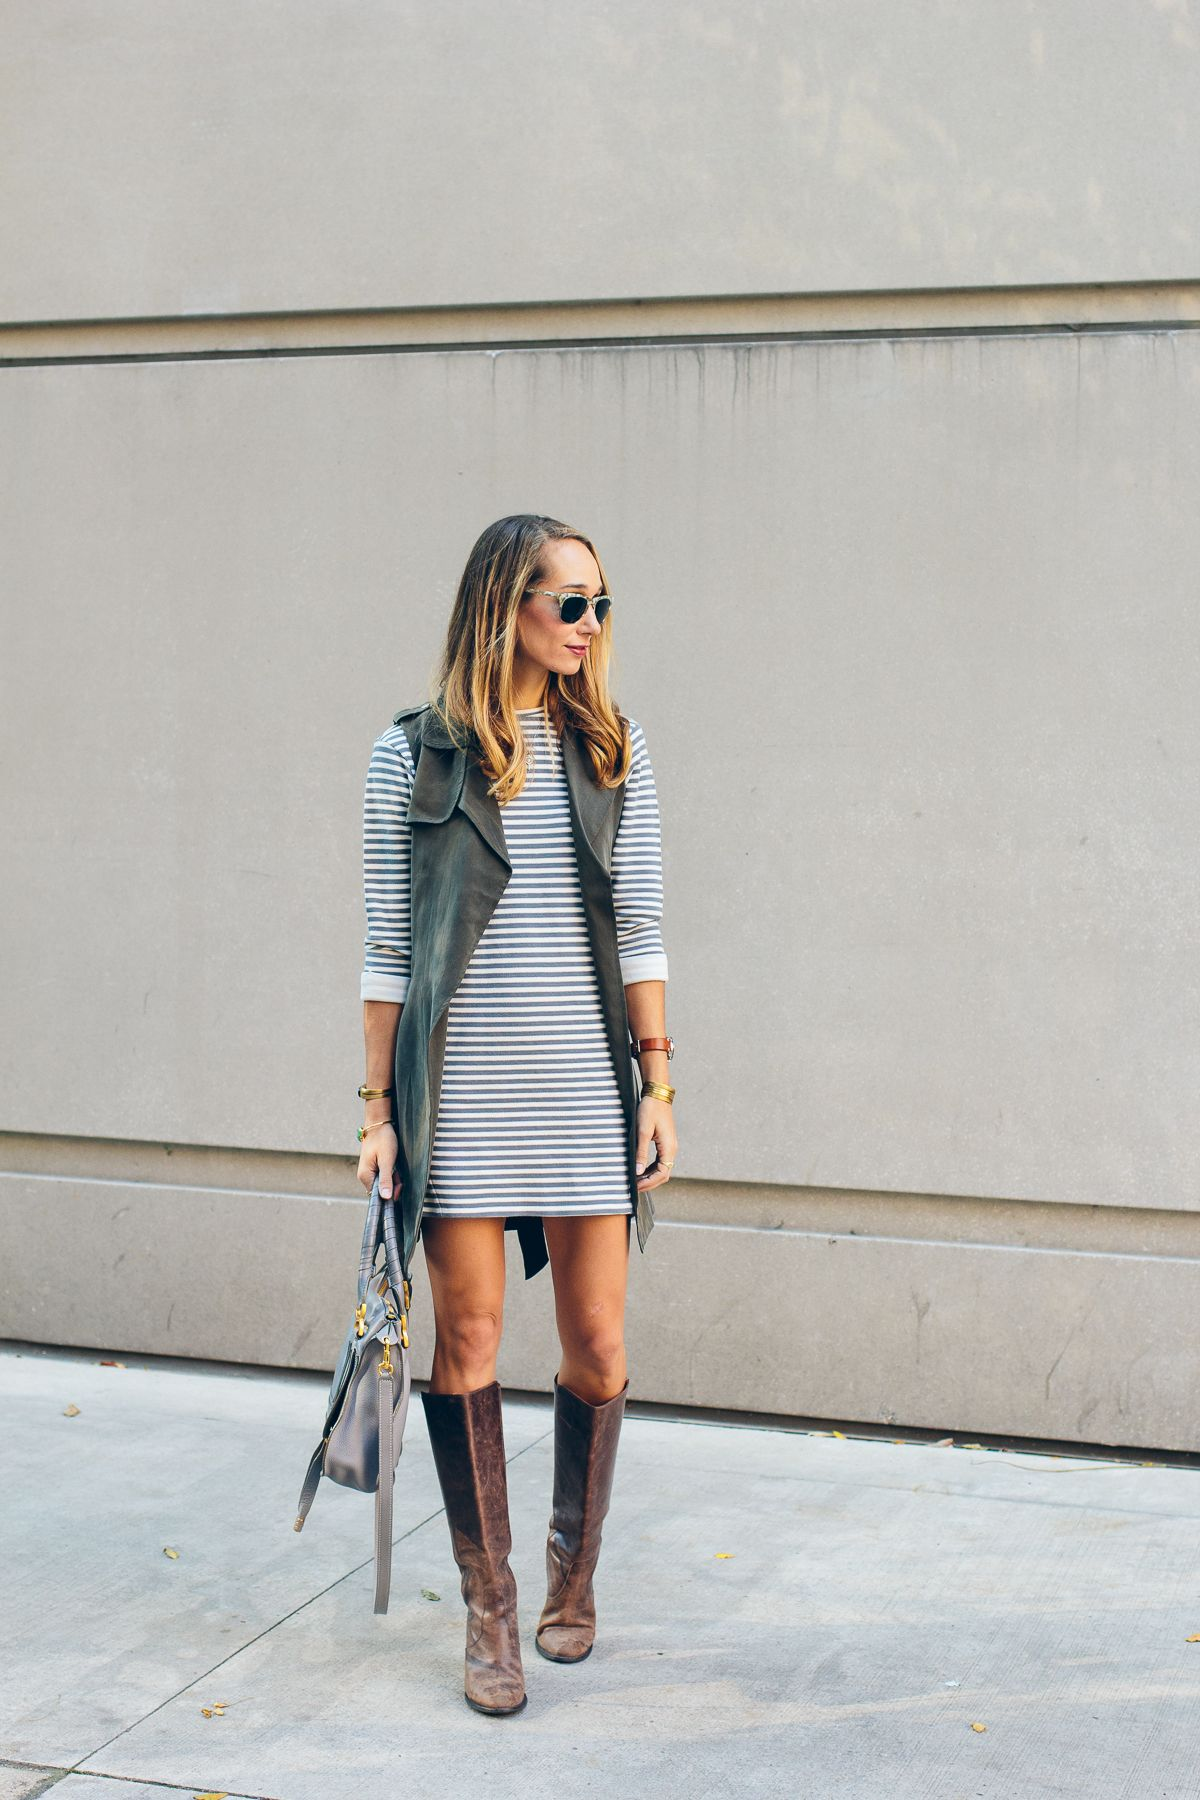 db391a688 striped dress, trench vest, leather boots, chloe bag — via @TheFoxandShe